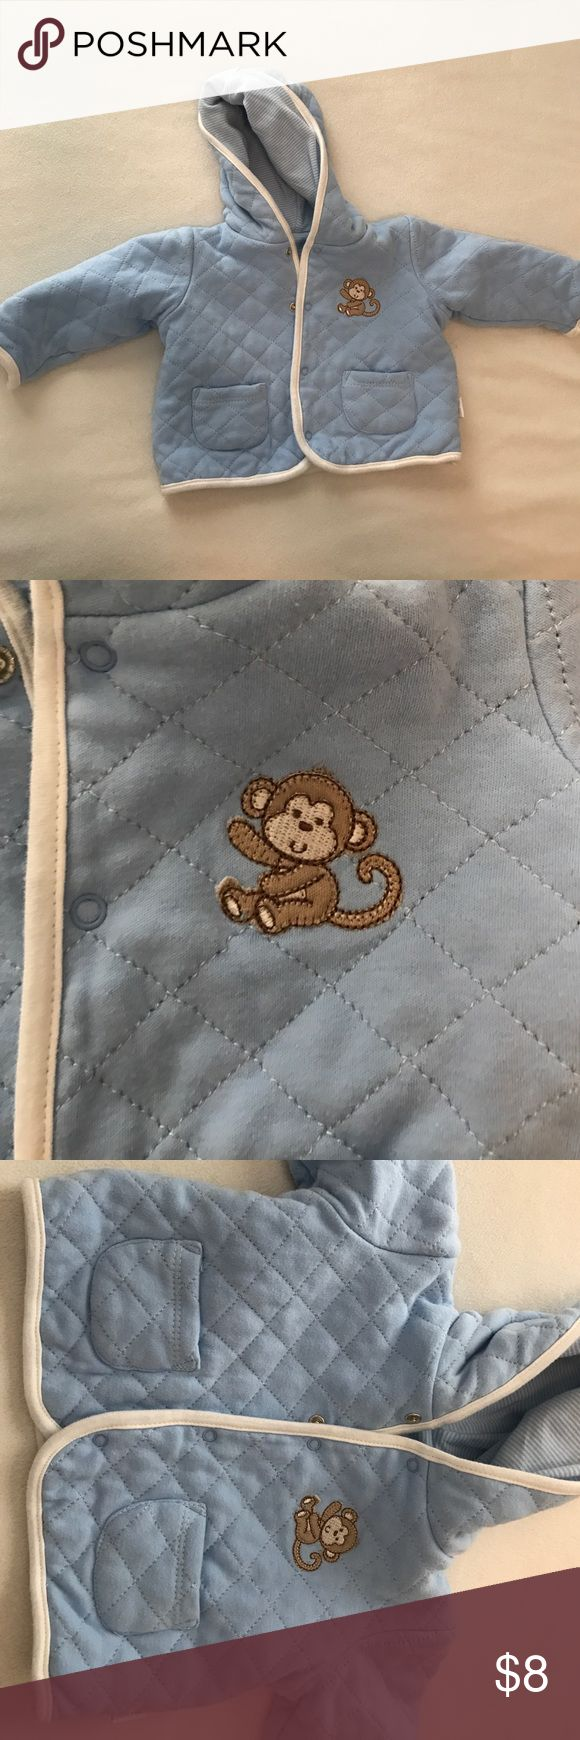 Quilted baby boy jacket Super cute, quilted baby boy jacket with hood, pockets and adorable monkey Jackets & Coats